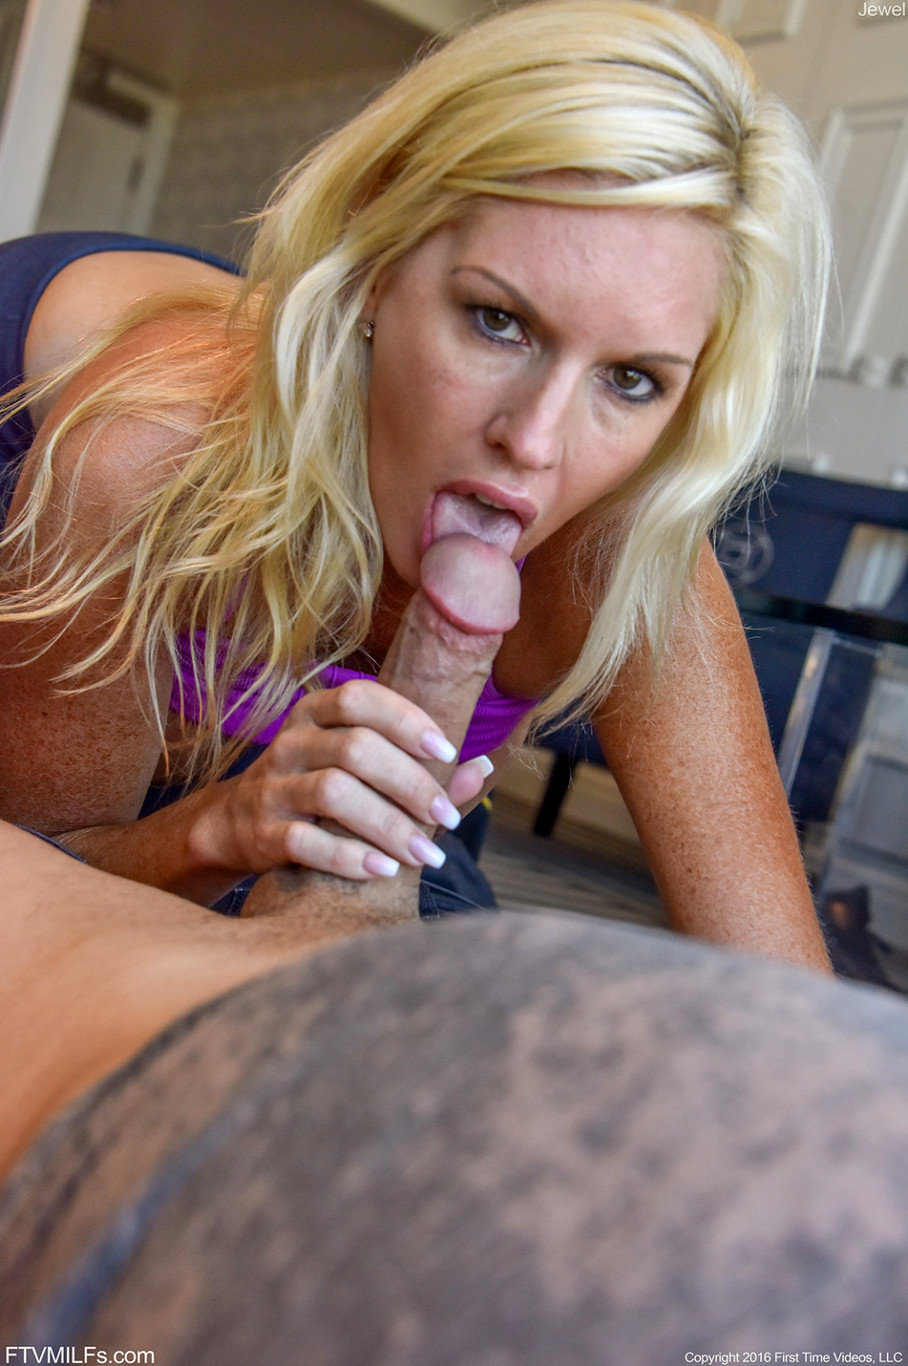 Real wife porn sites-5123